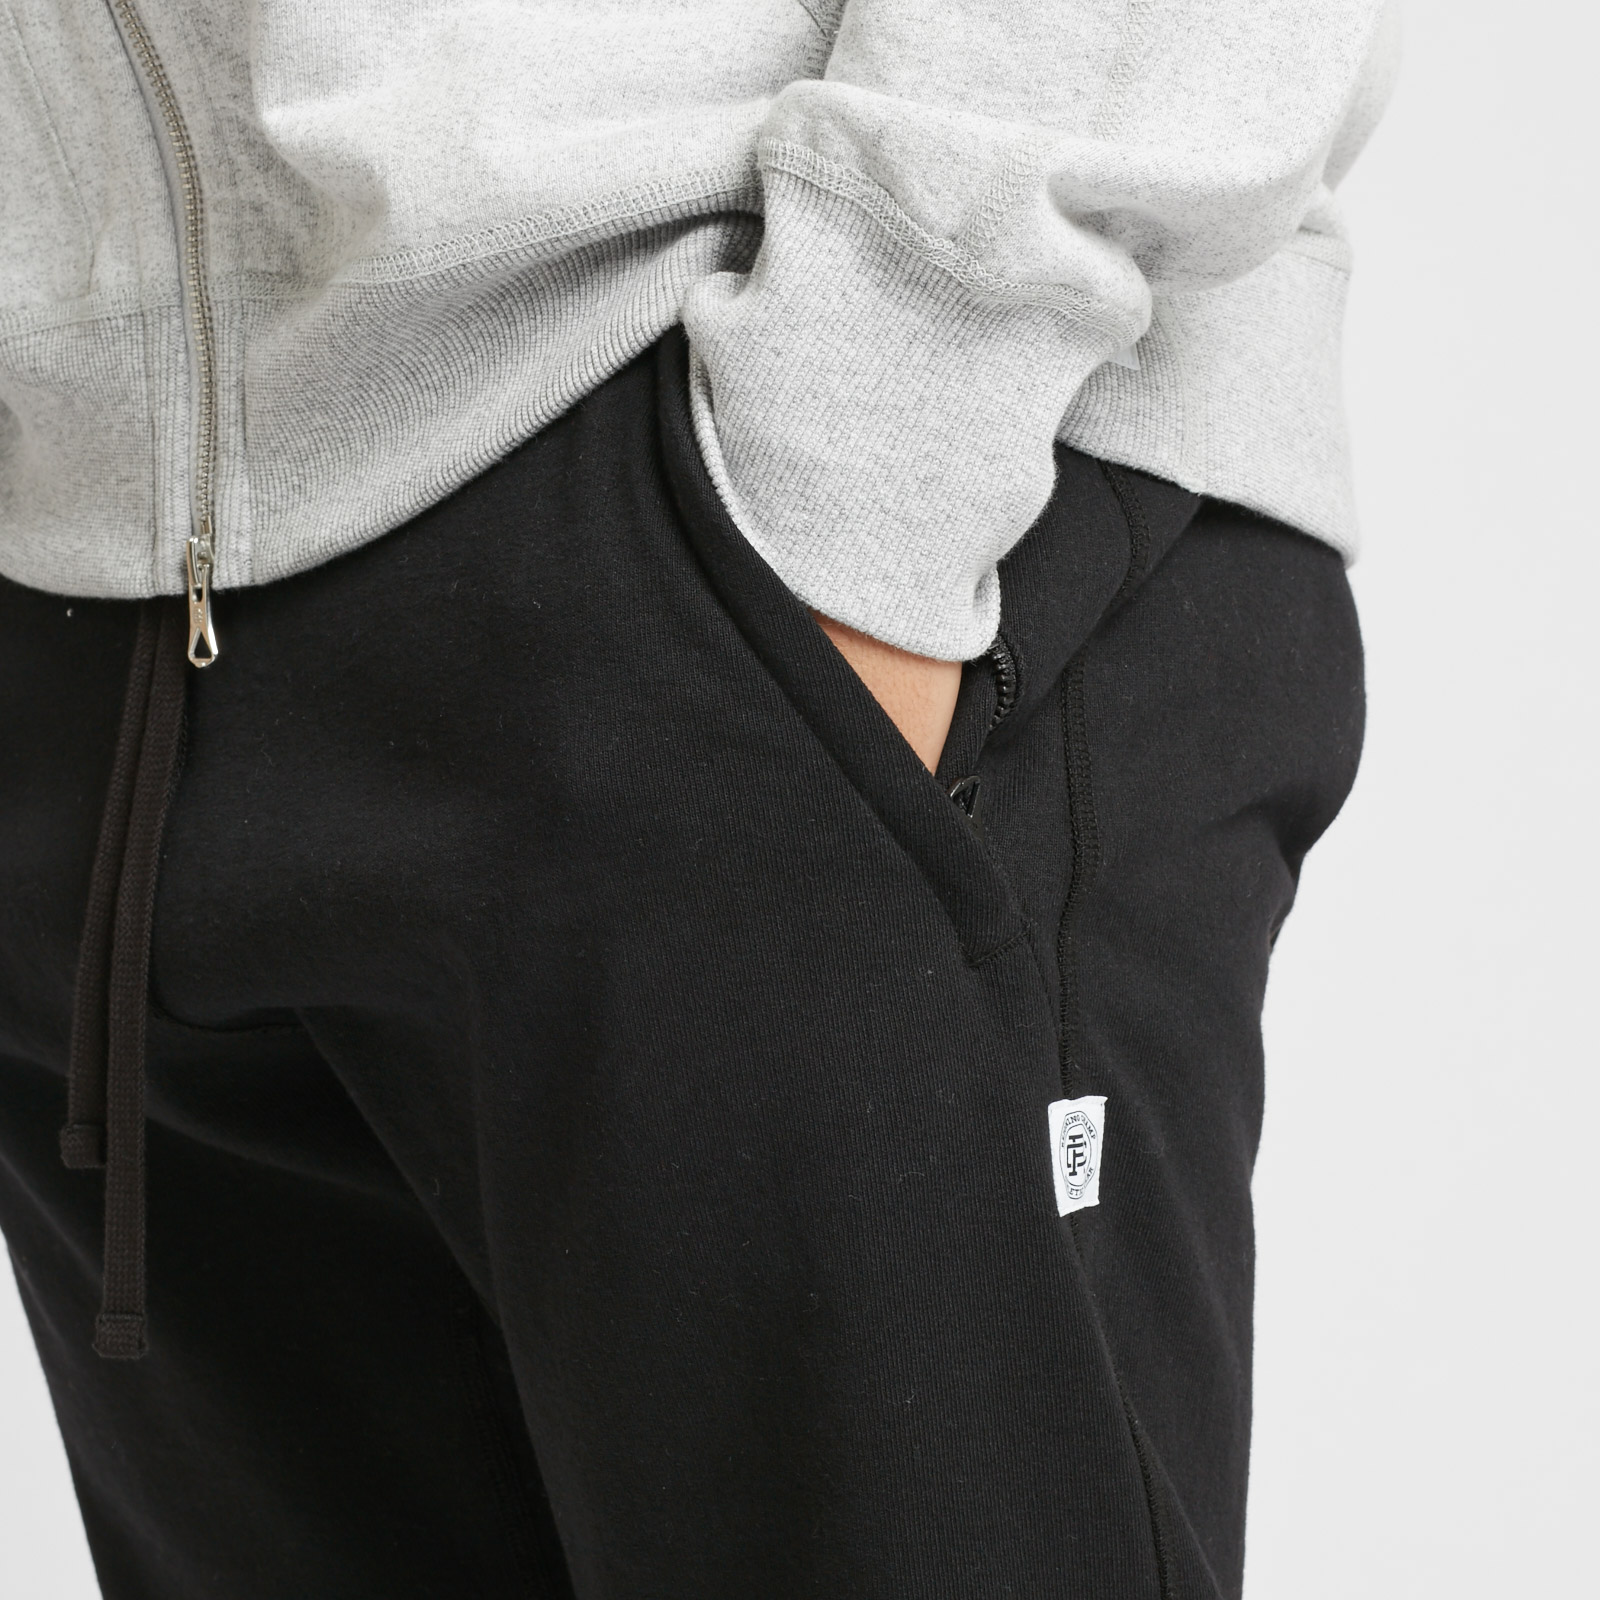 72d12ac1e97d Reigning Champ Slim Sweatpant-Heavy Weight Terry - Rc-5108-blk ...